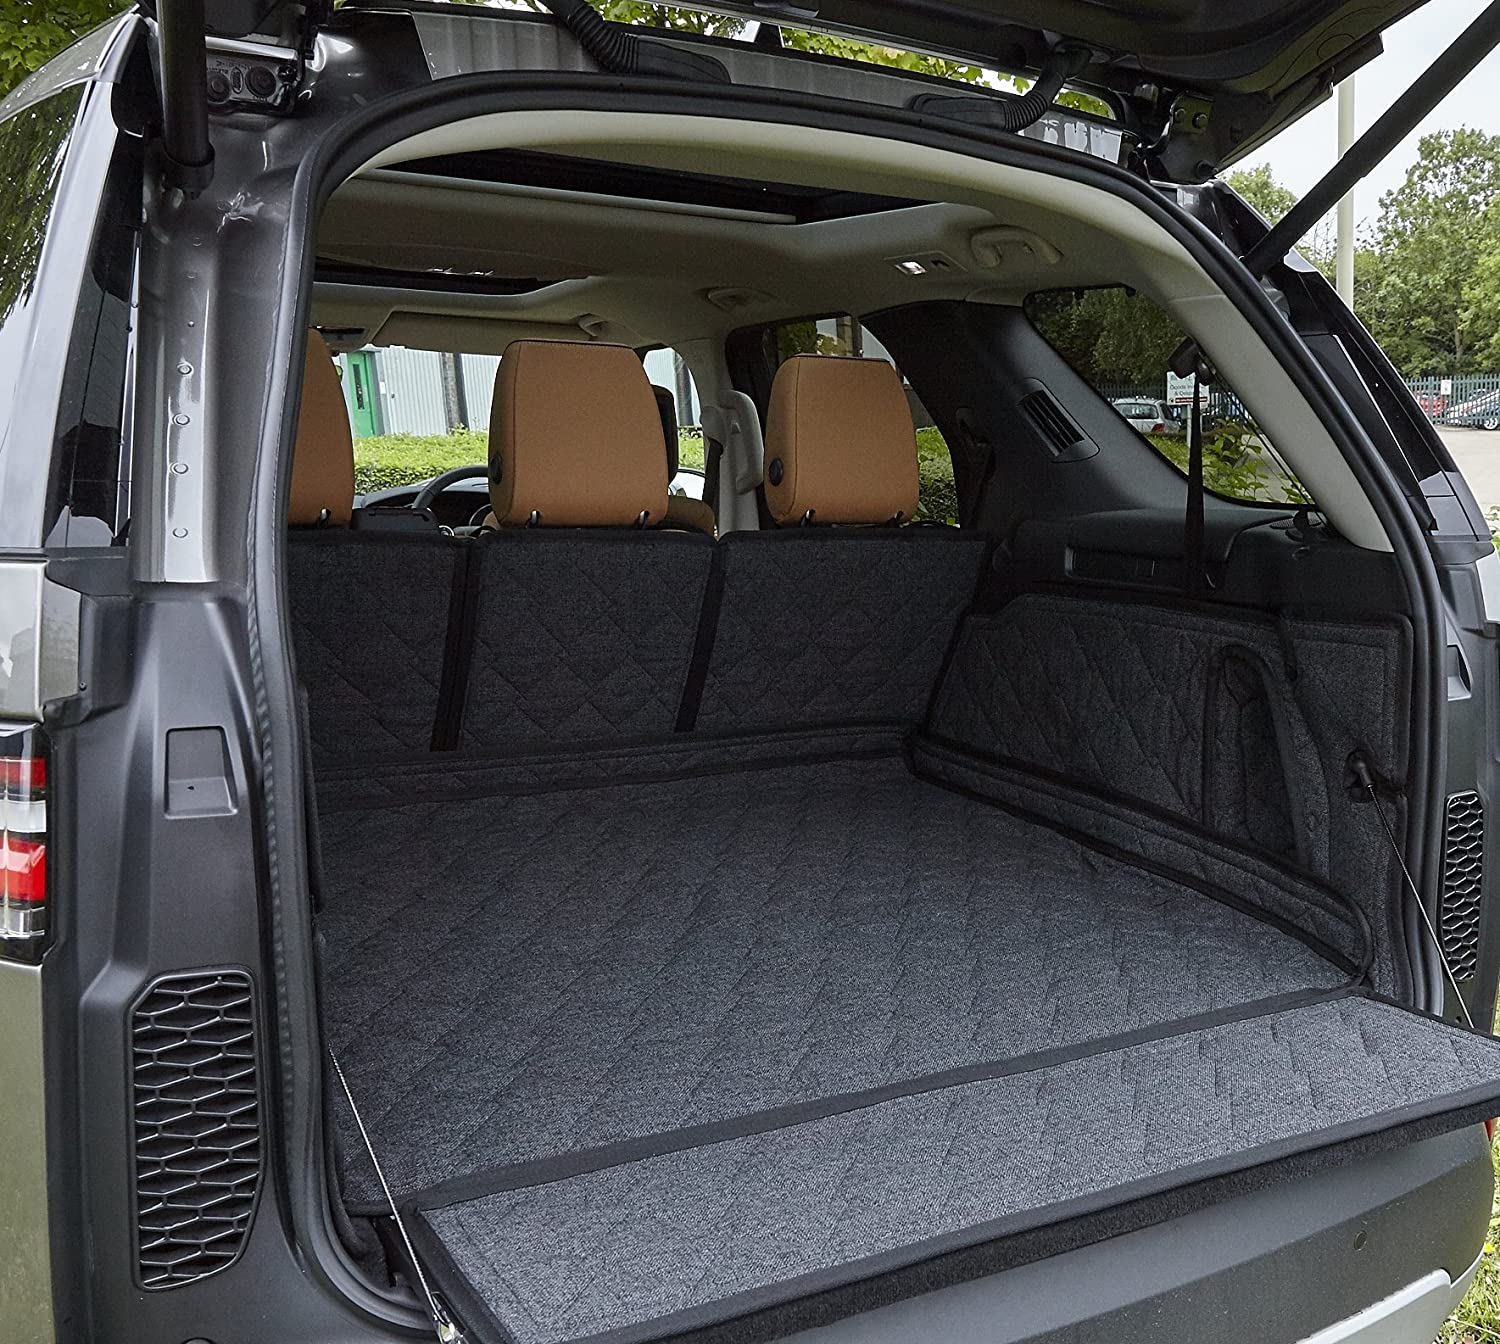 Over The Top Premium Quality Custom Car Boot Liner with Extender, Black